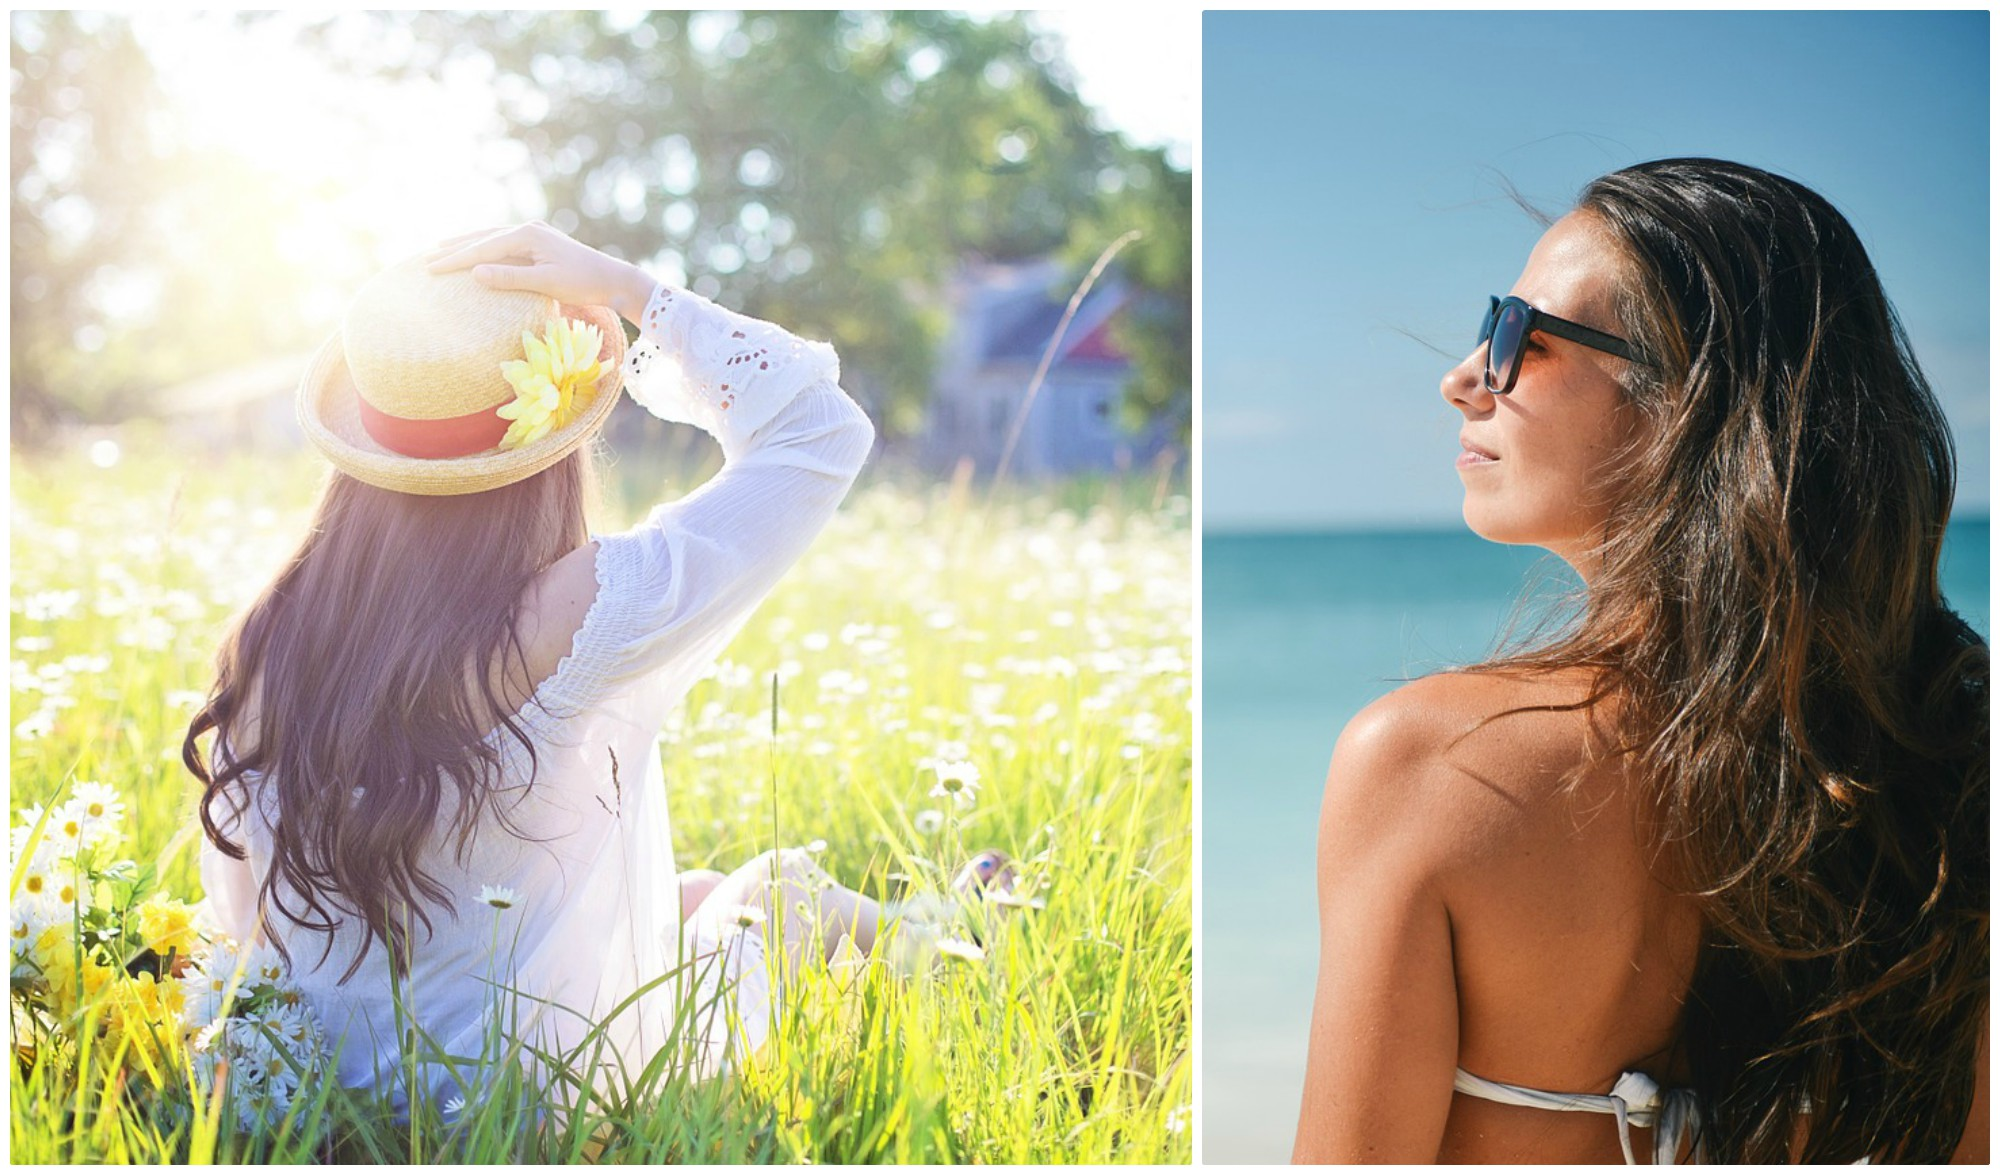 Your Beauty Hair about UV protection for hair